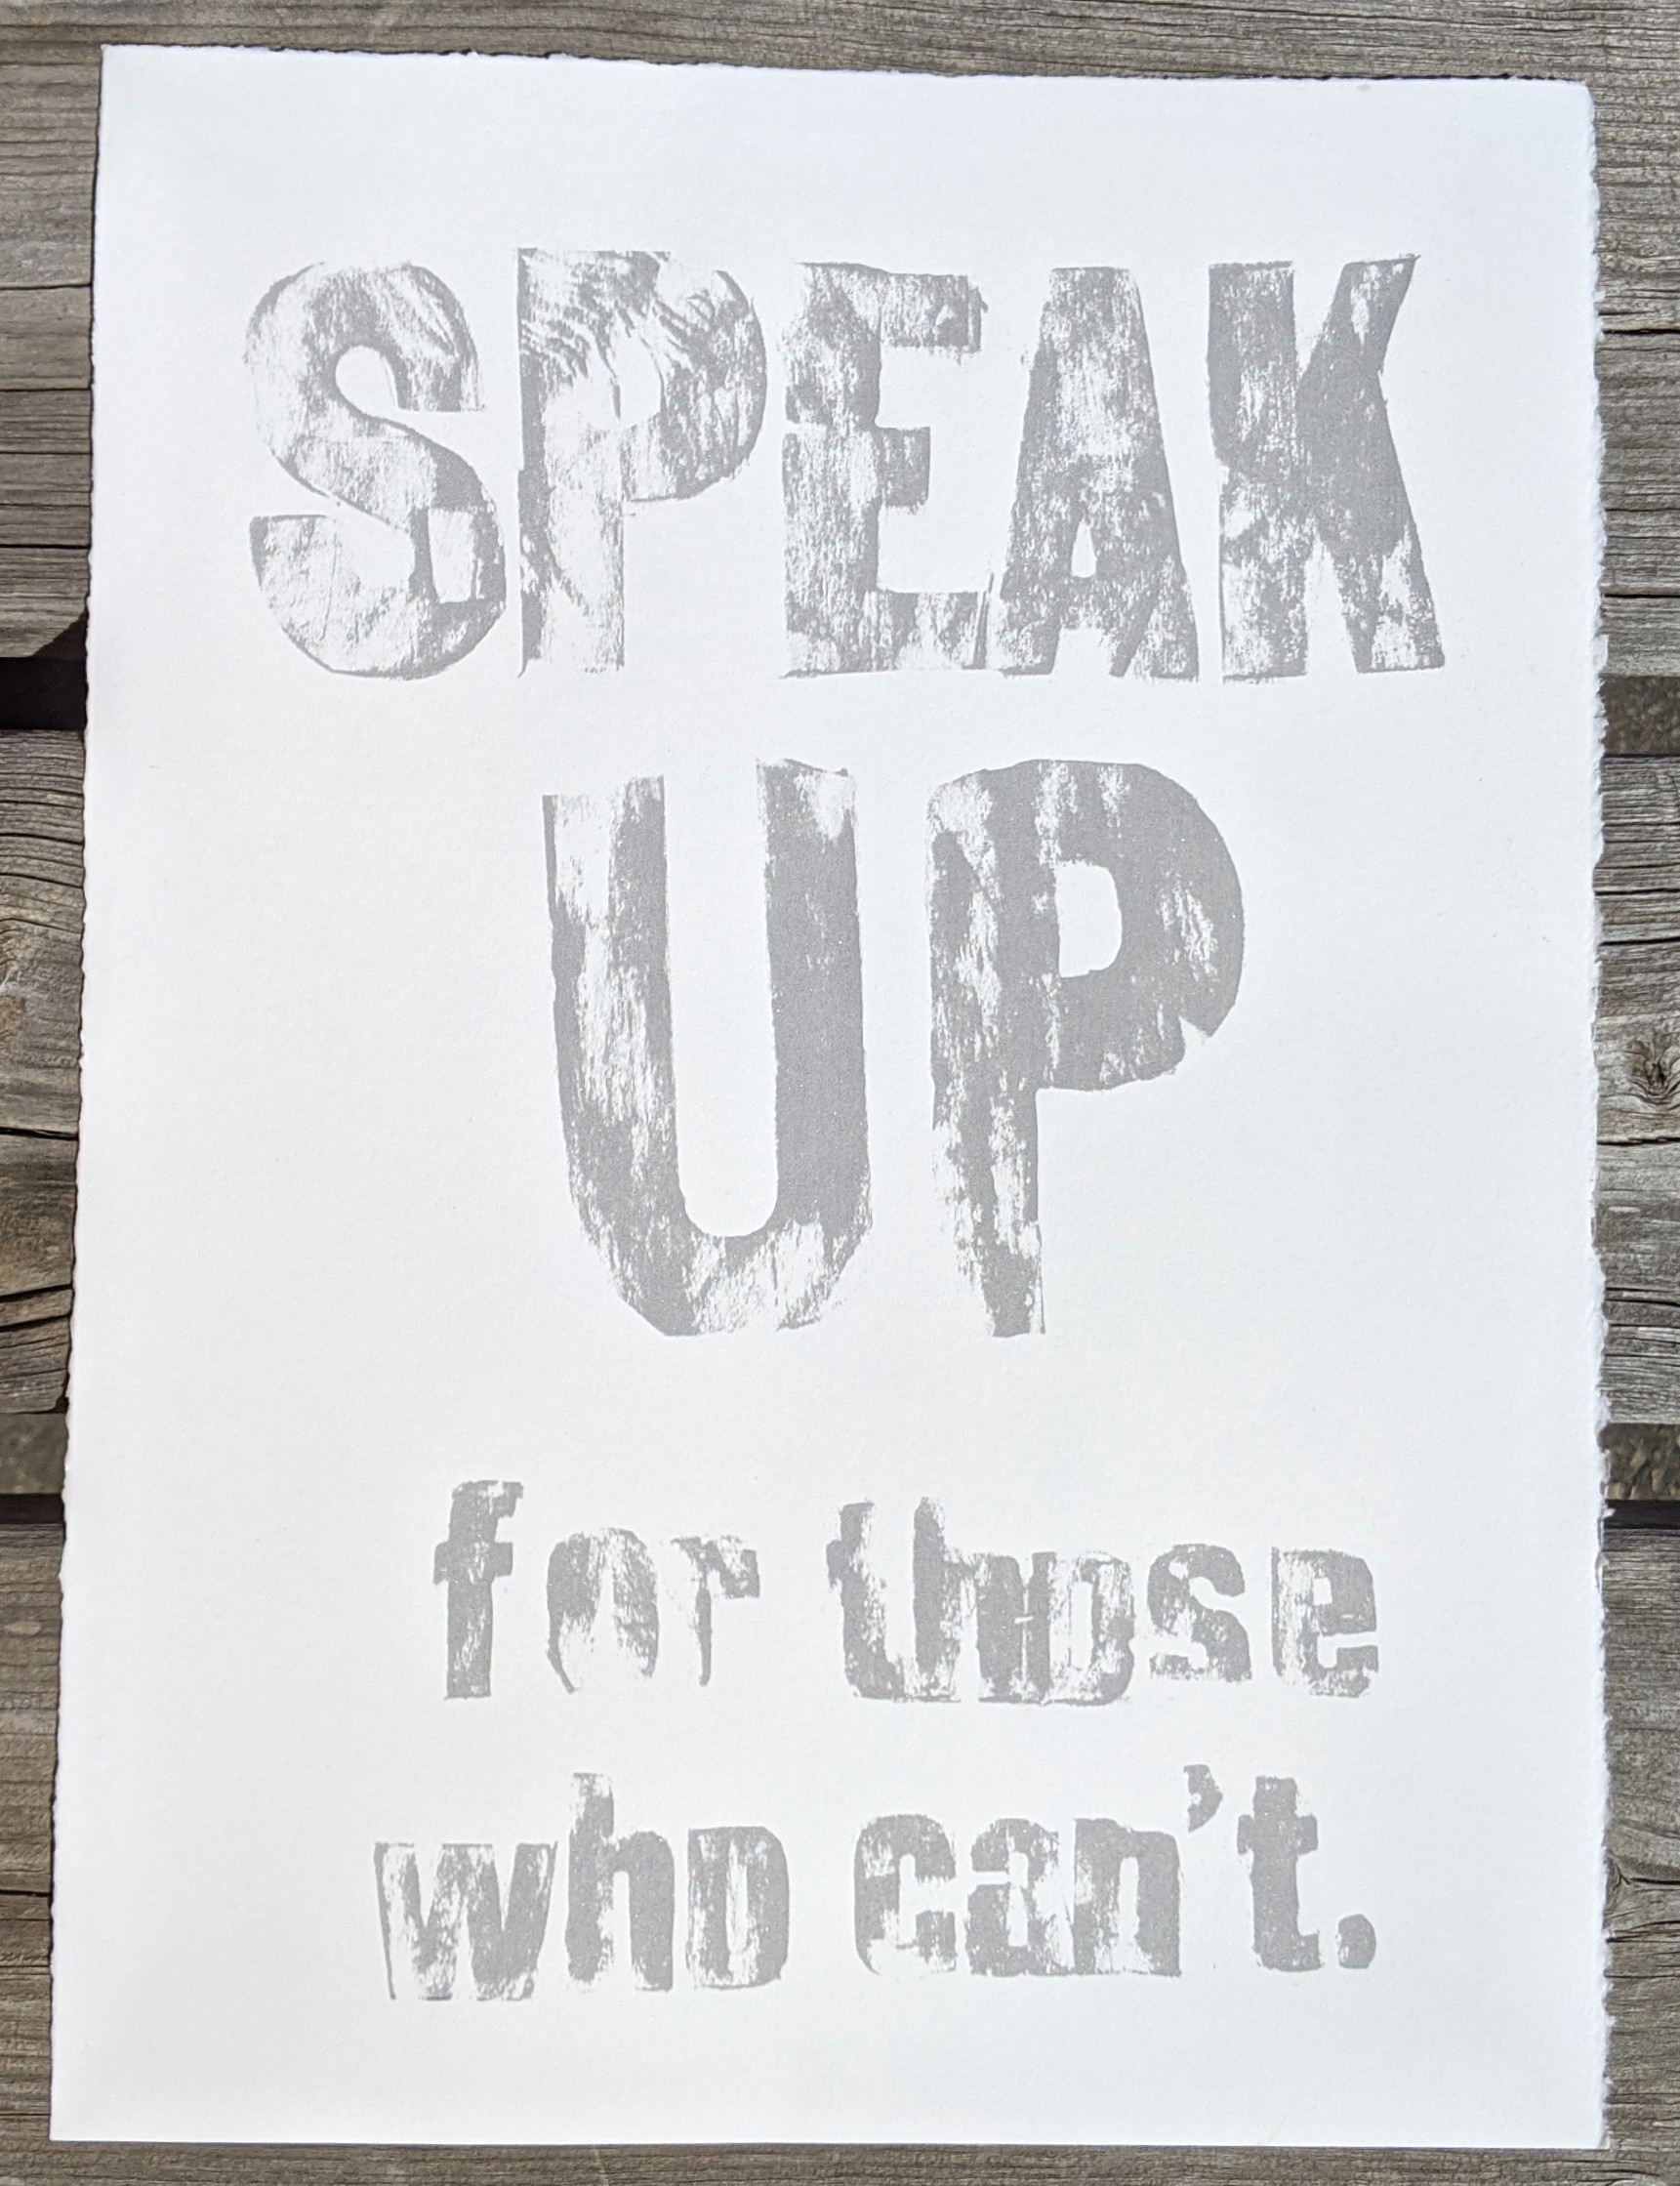 "Speak Up for those who can't, Screen printed protest poster, 11"" x 15"", 2020, $20"